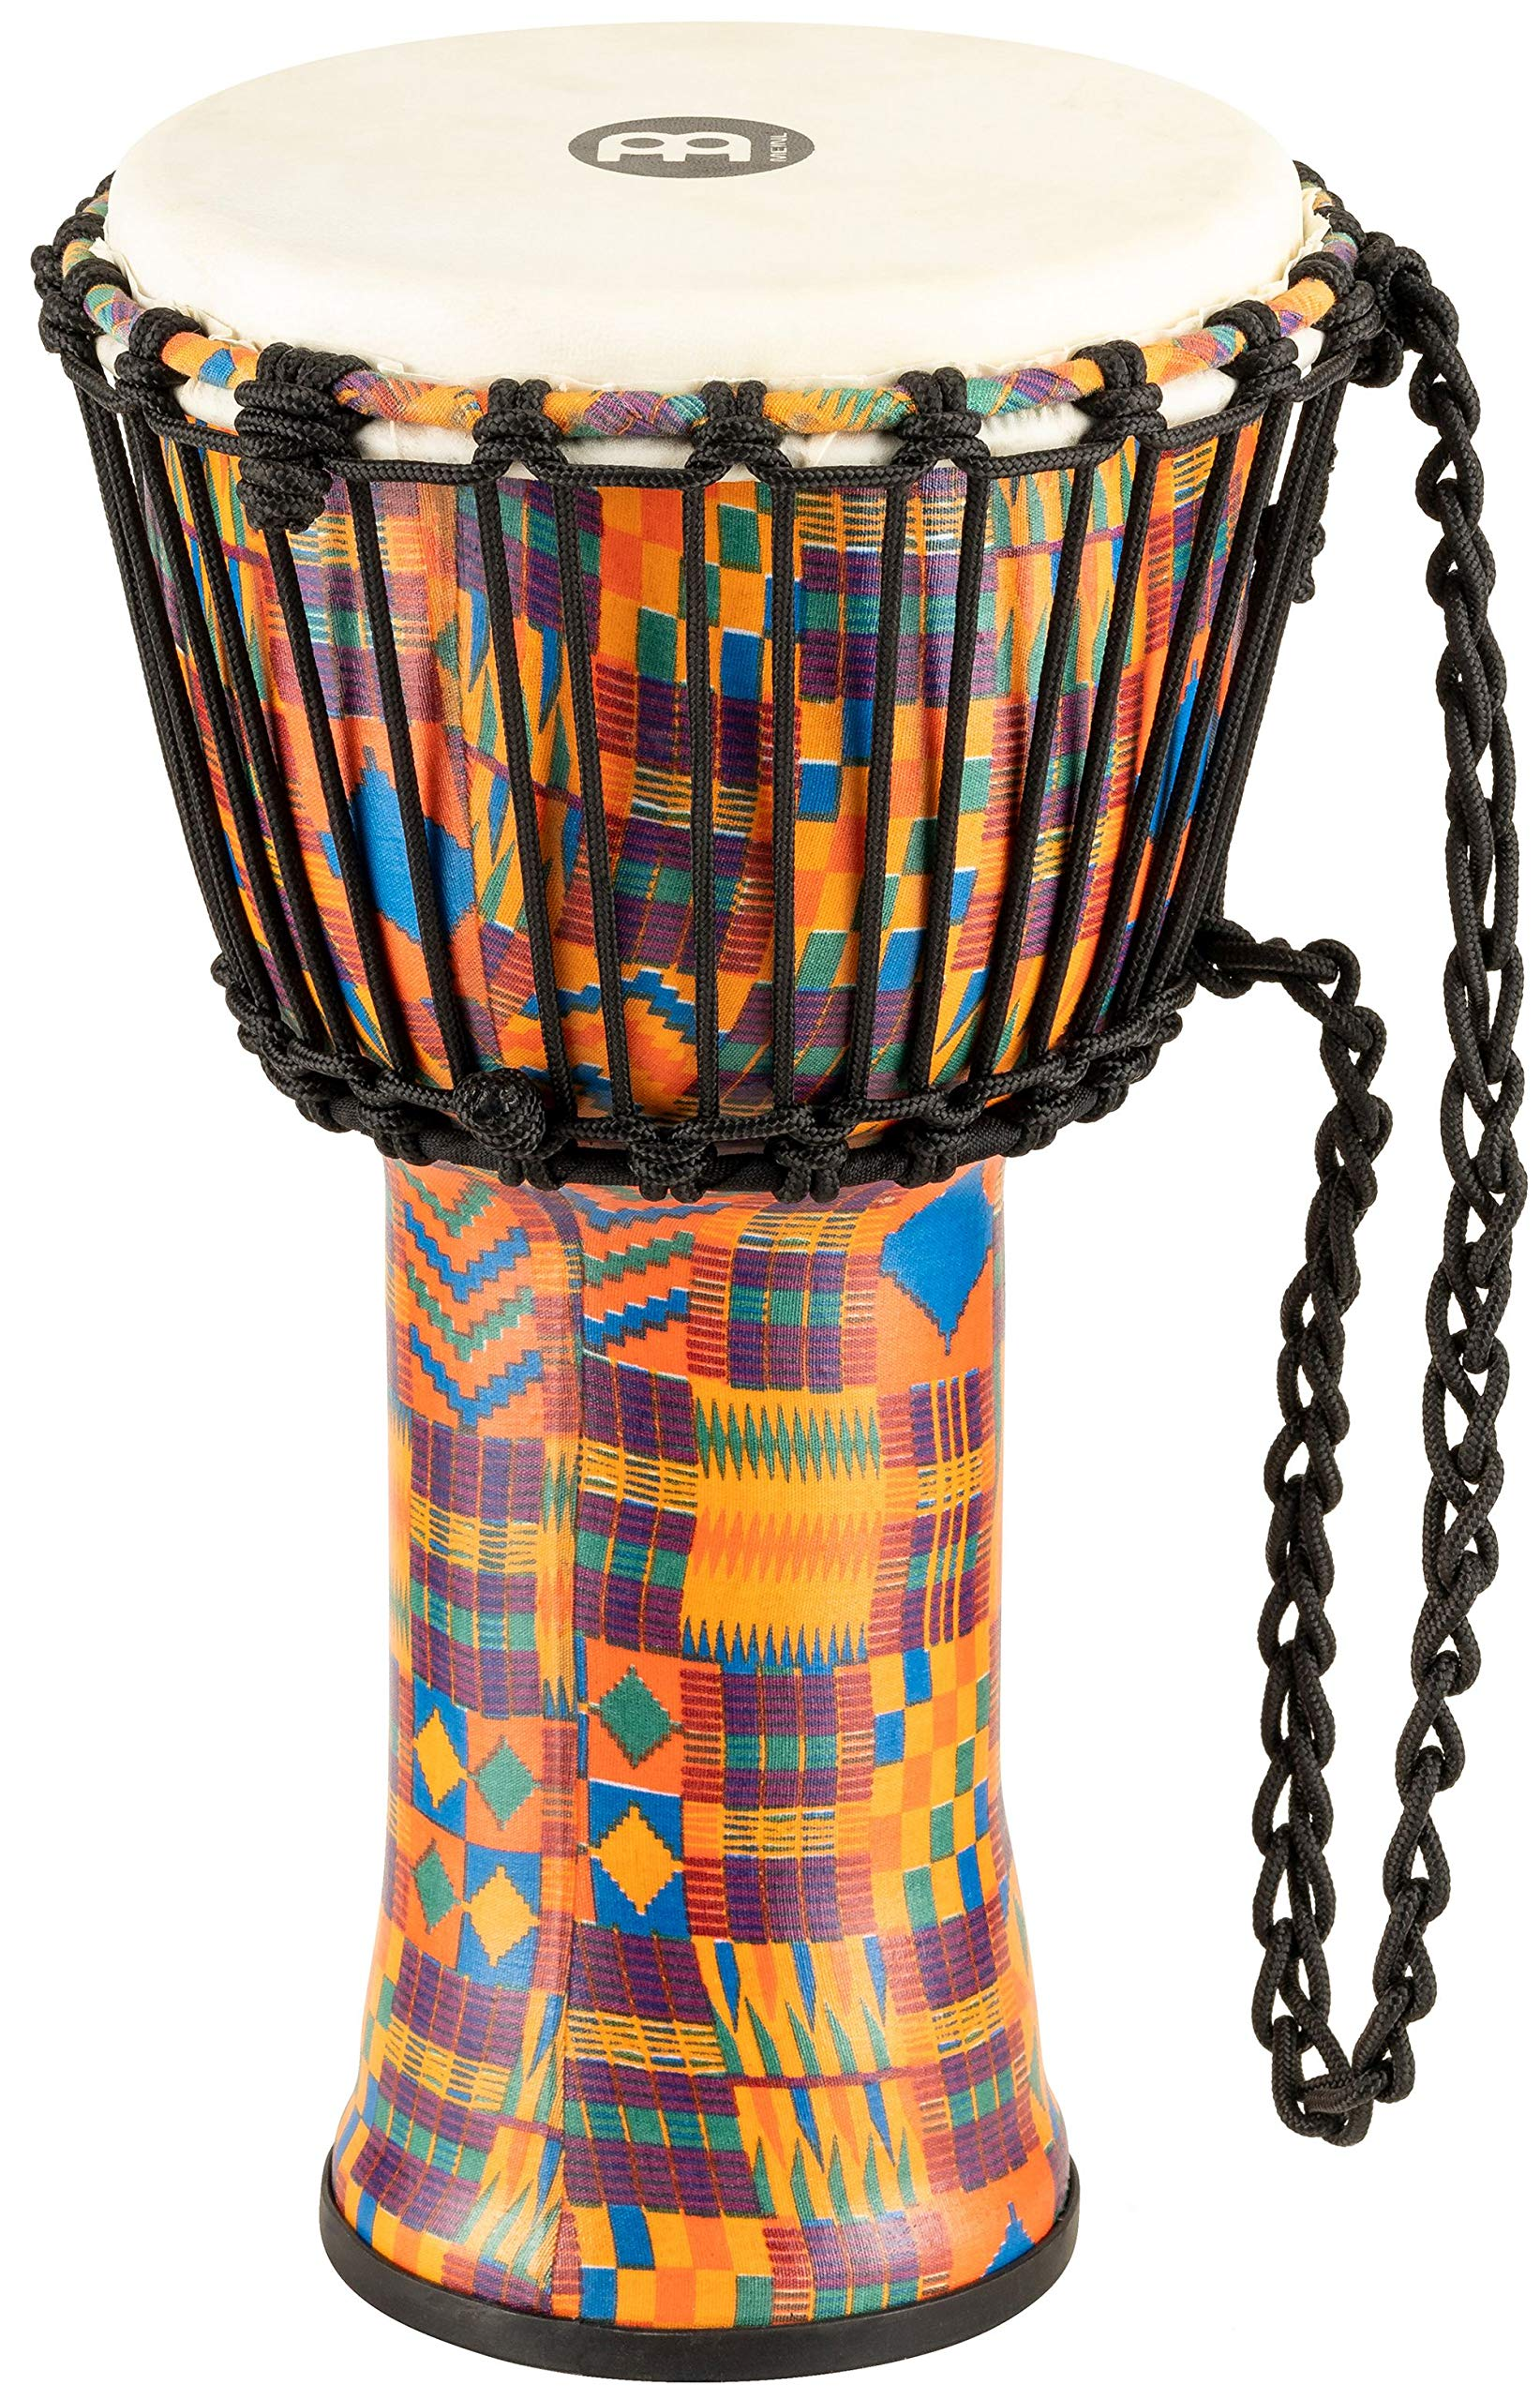 Meinl Percussion Travel Djembe with Synthetic Shell - NOT MADE IN CHINA - 8'' Small Size, Rope Tuned Goat Skin Head, Kenyan Quilt, 2-YEAR WARRANTY, 8'' (S) (PADJ2-S-G) by Meinl Percussion